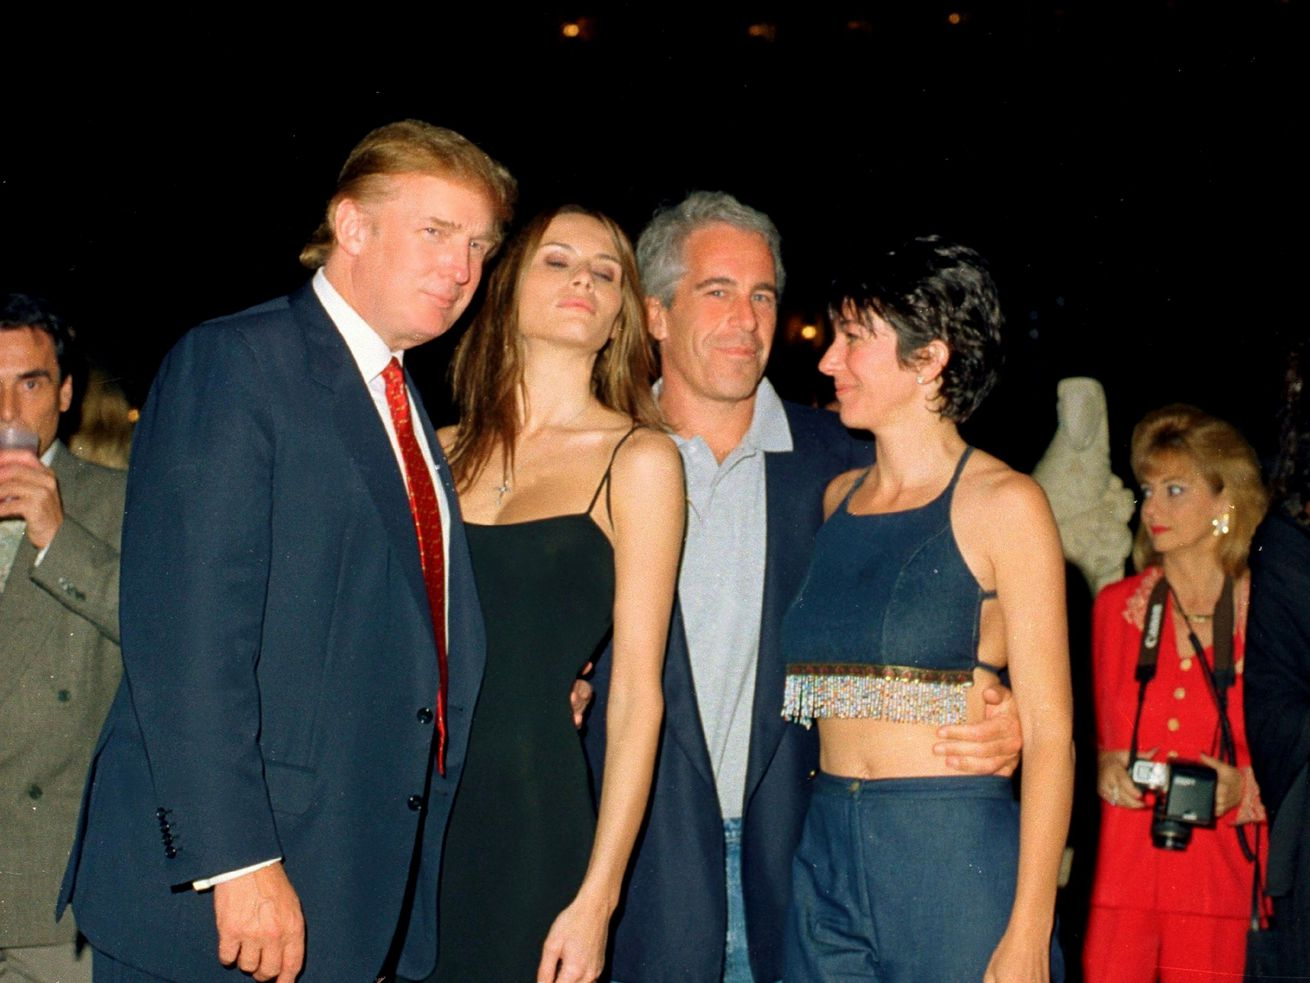 Jeffrey Epstein and his partner, Ghislaine Maxwell, with Donald and Melania Trump at Mar-a-Lago in 2000.